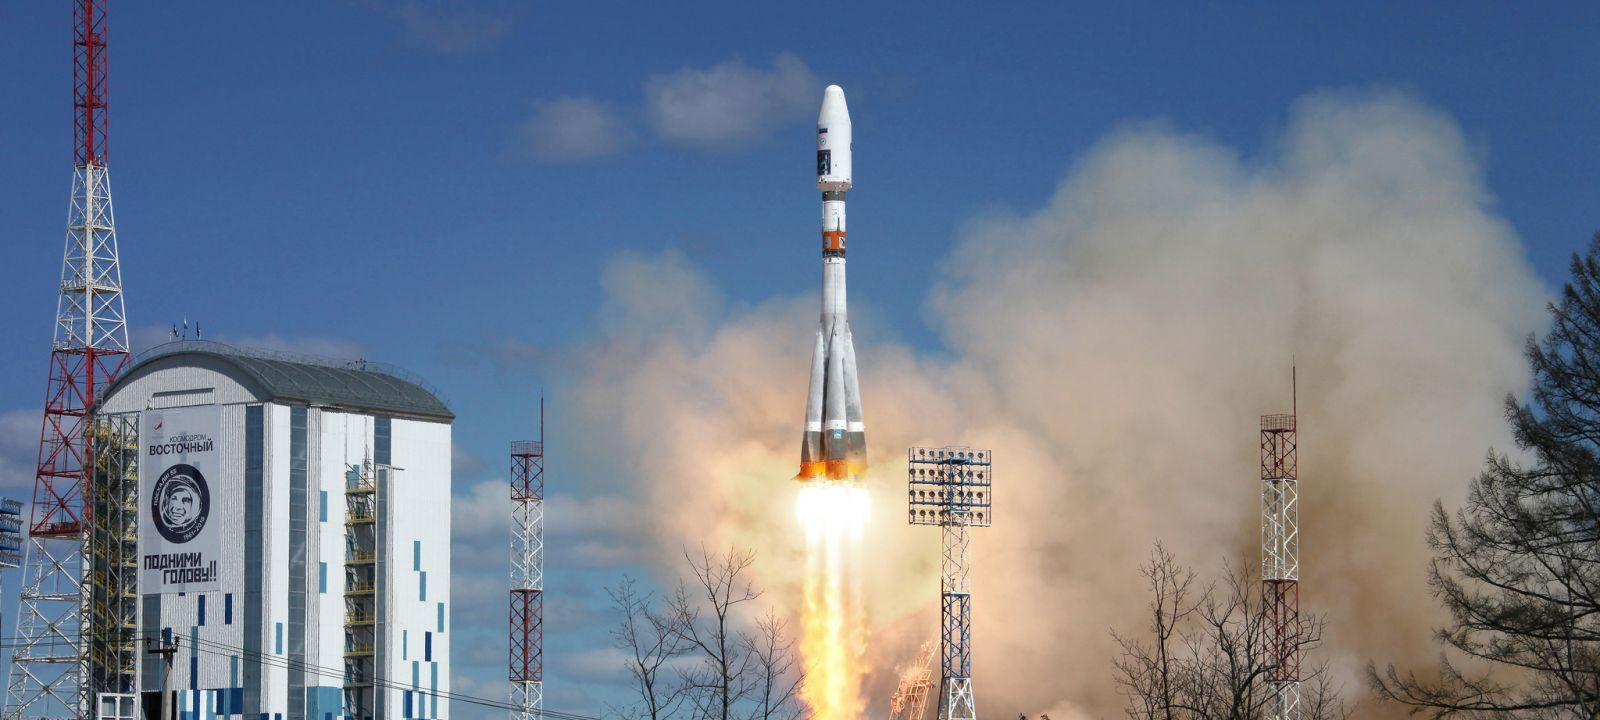 First launch of a Soyuz-2.1a from Vostochny Cosmodrome (2016-04-28 at 02:01 UTC)